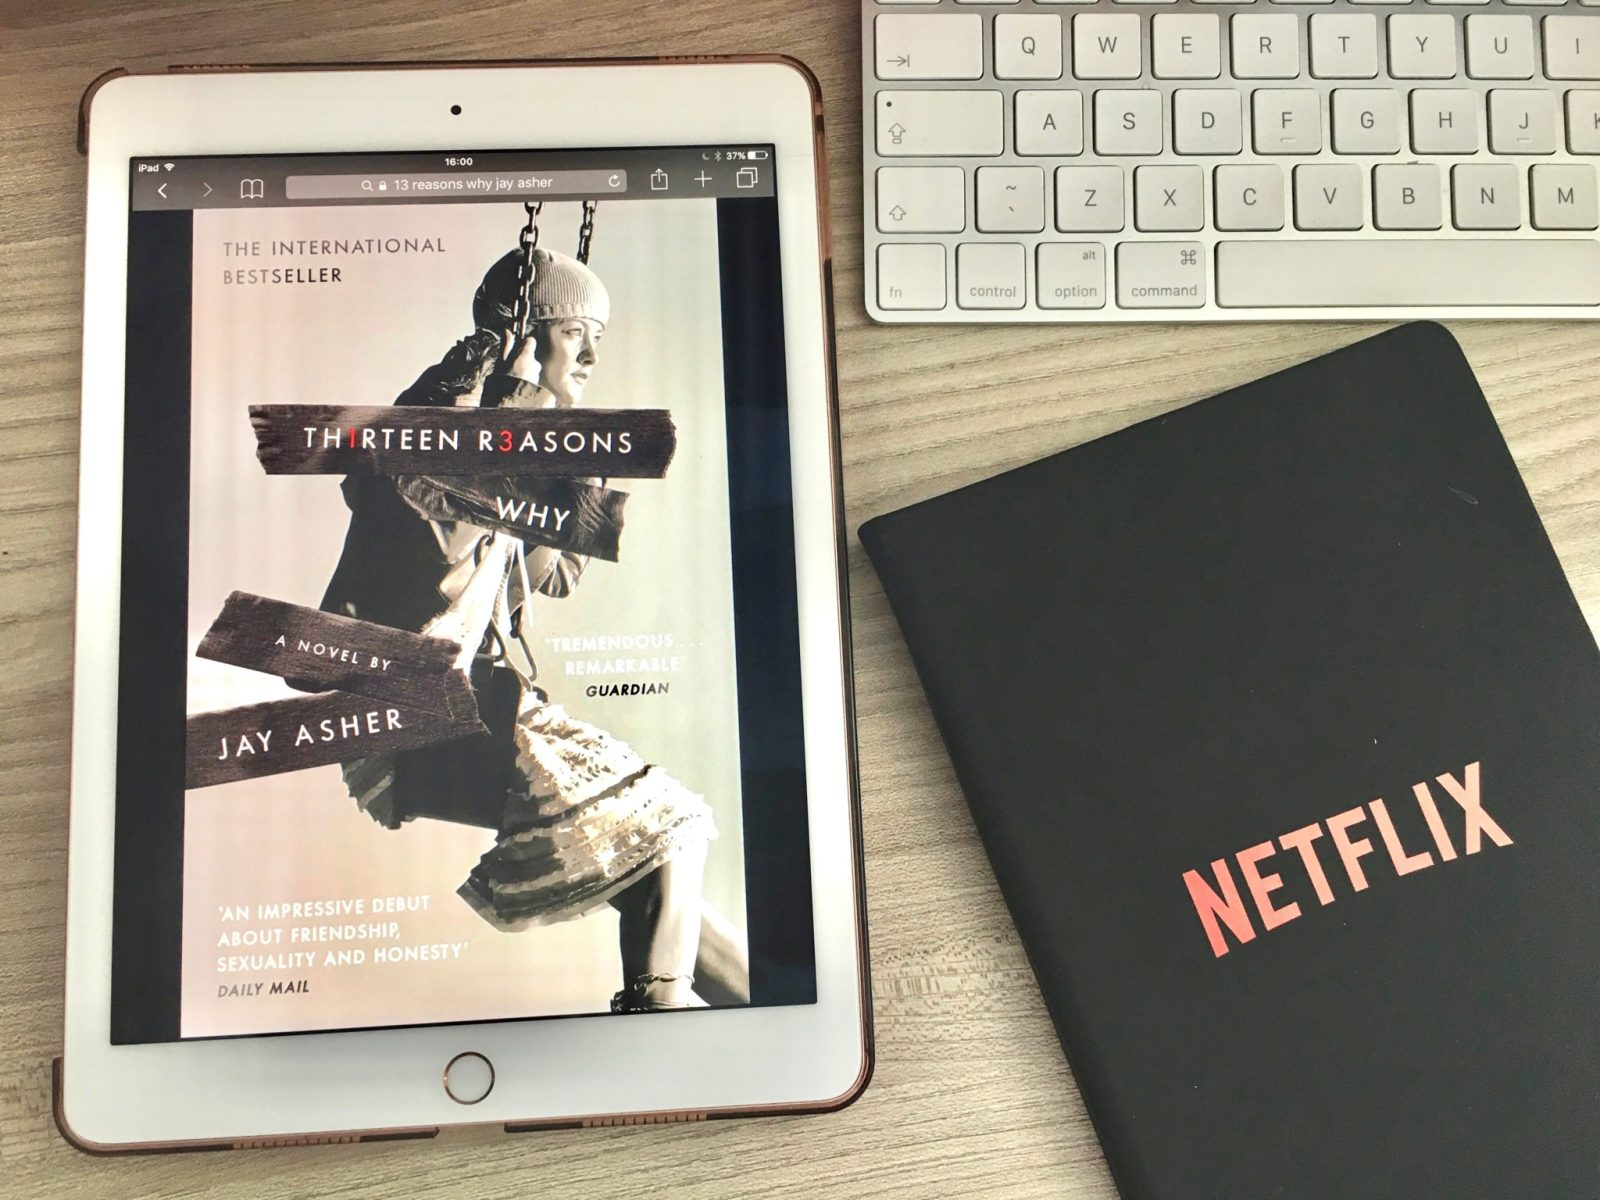 13 Reasons Why by Jay Asher Netflix